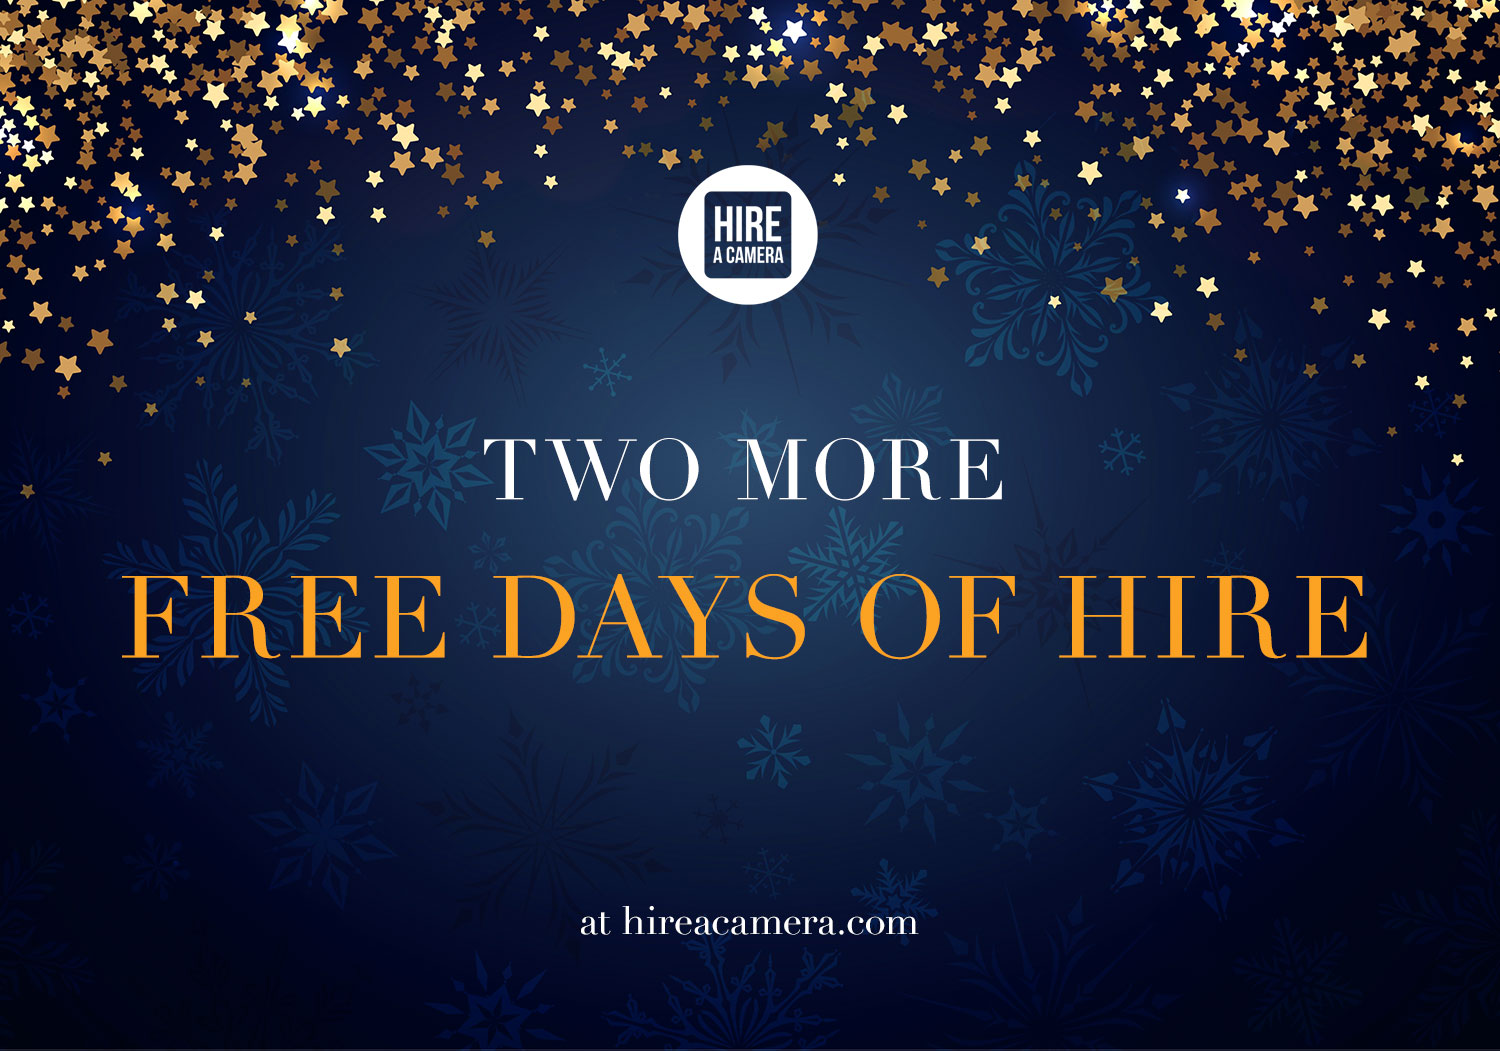 Two more free days of hire!